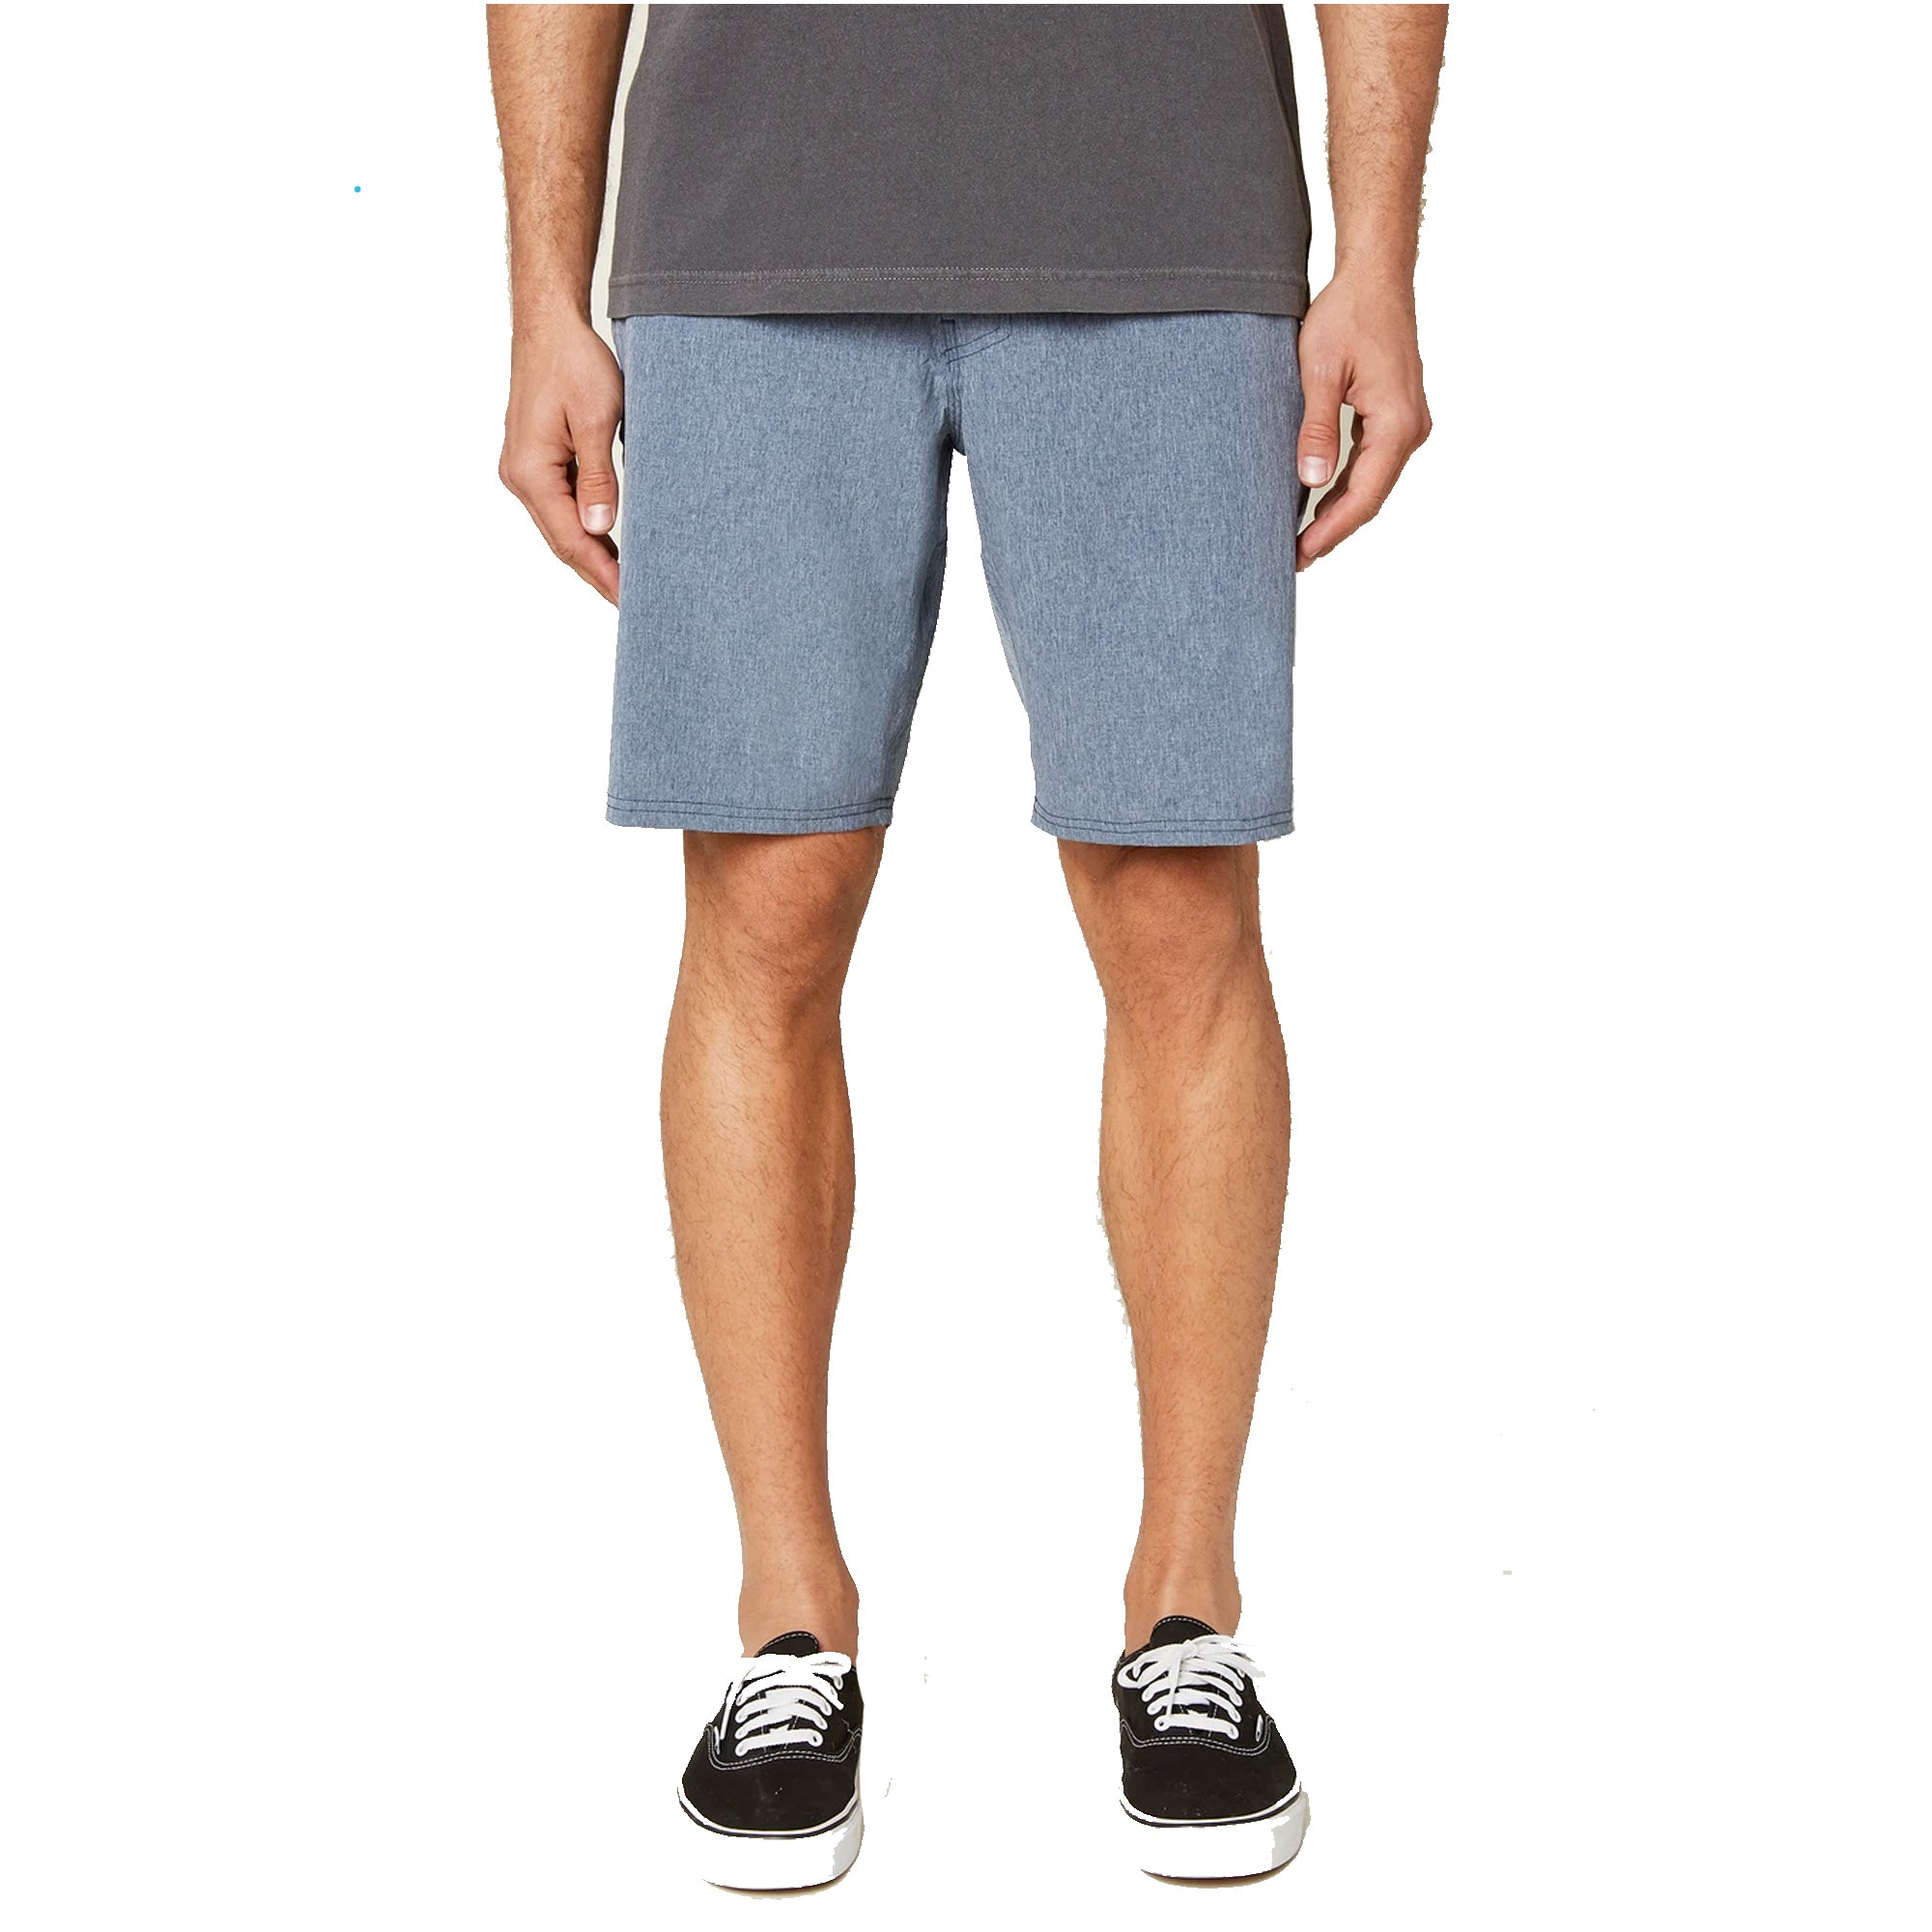 "O'Neill Reserve Heather 19"" Hybrid Men's Walkshorts"